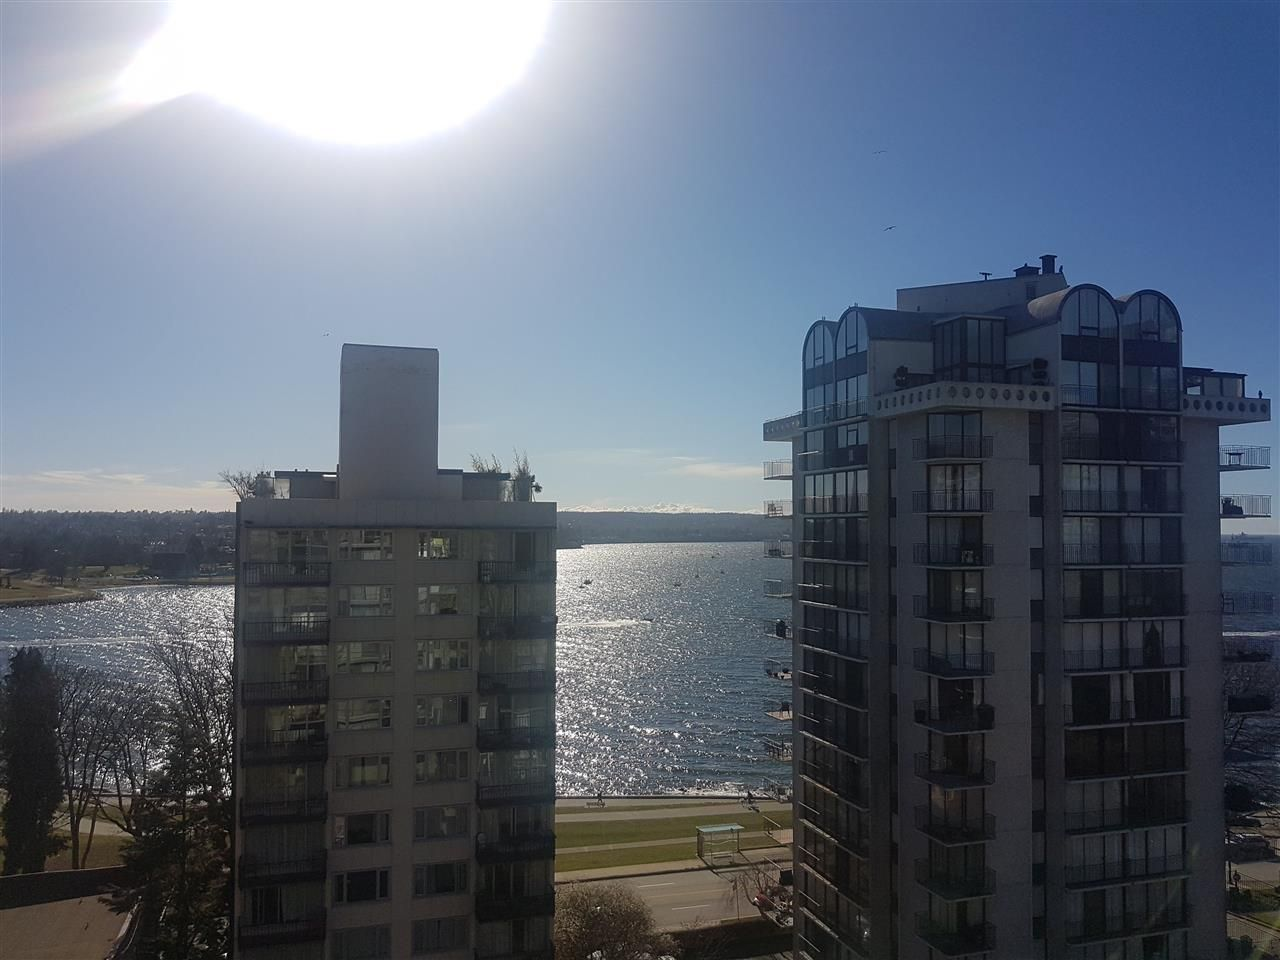 """Main Photo: 904 1534 HARWOOD Street in Vancouver: West End VW Condo for sale in """"ST.PIERRE"""" (Vancouver West)  : MLS®# R2292846"""